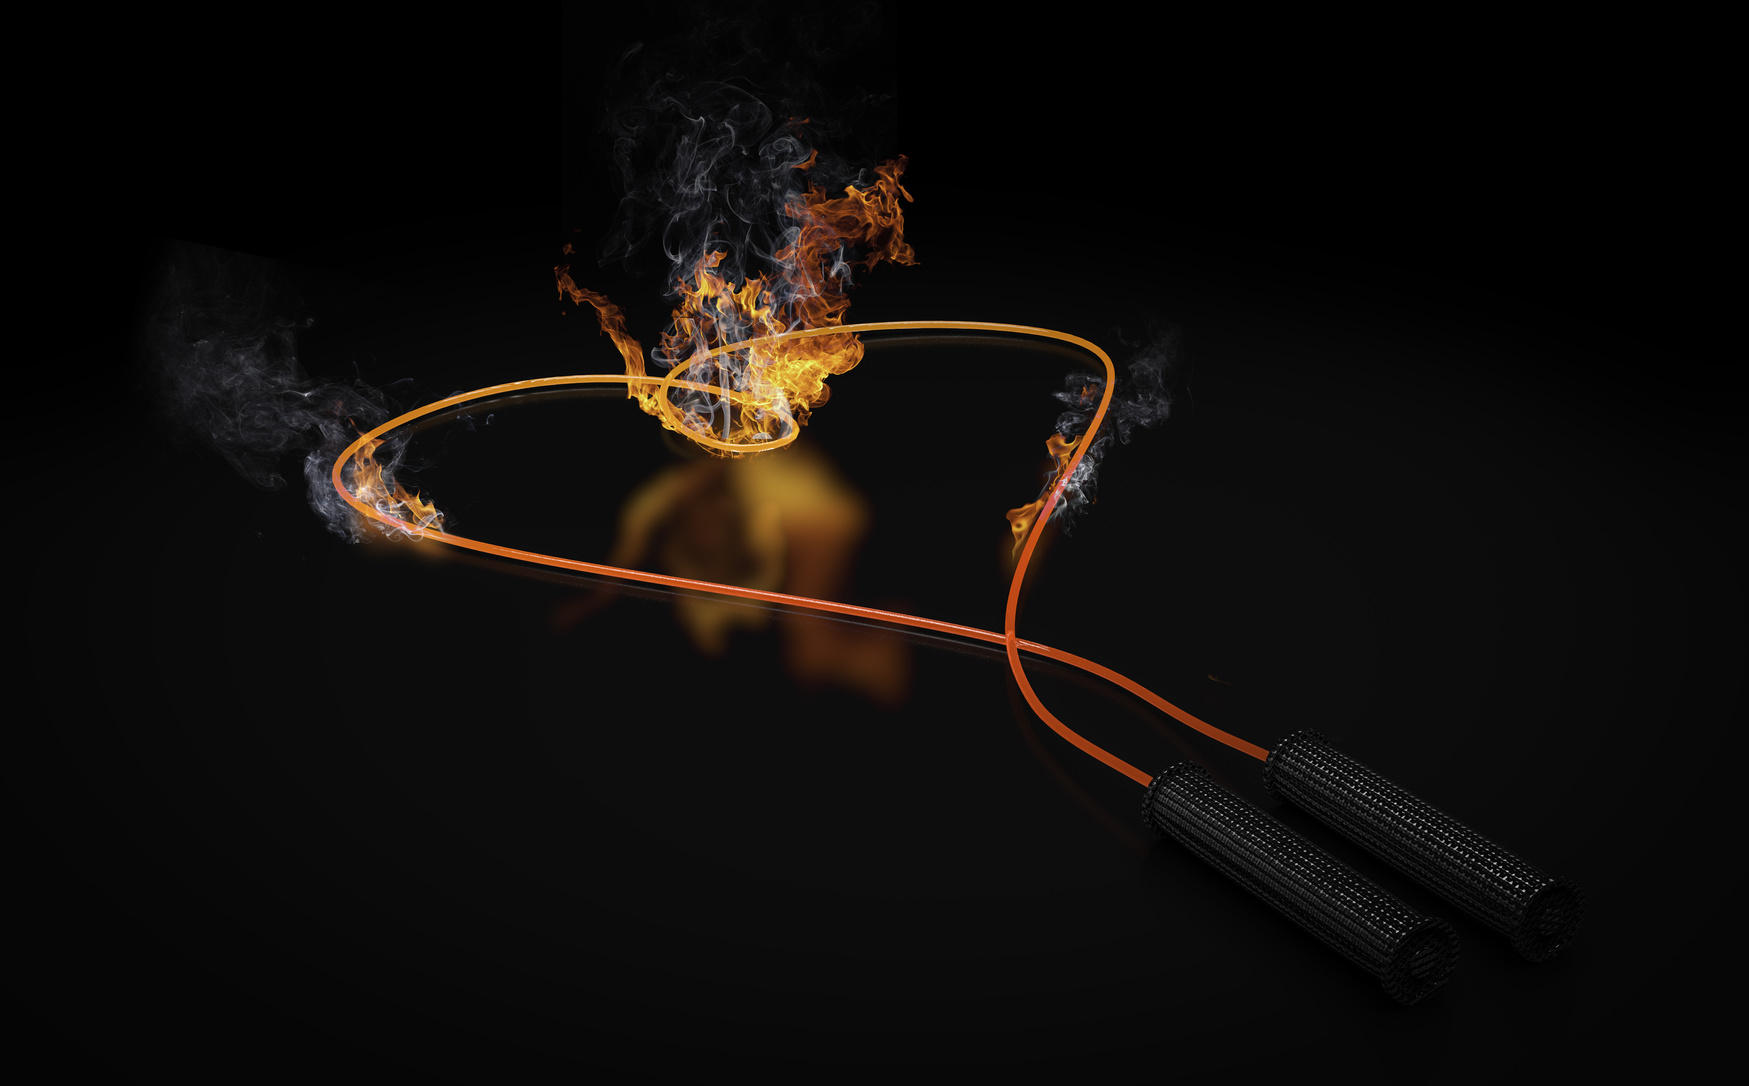 jump rope with heart shape on fire